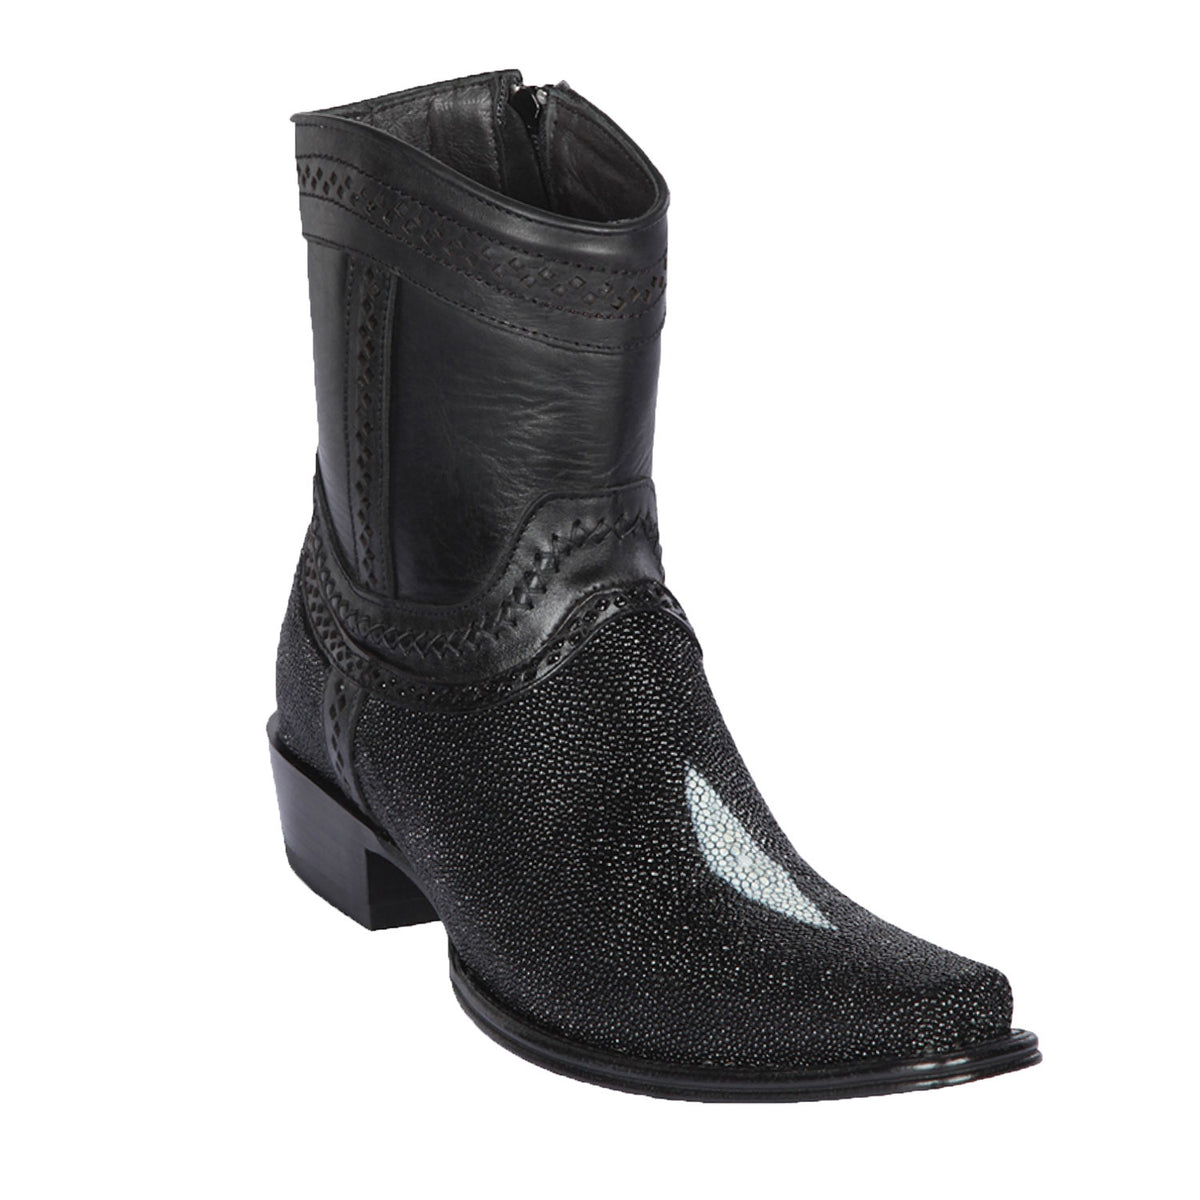 Stingray Skin Short Boot LAB-76B12